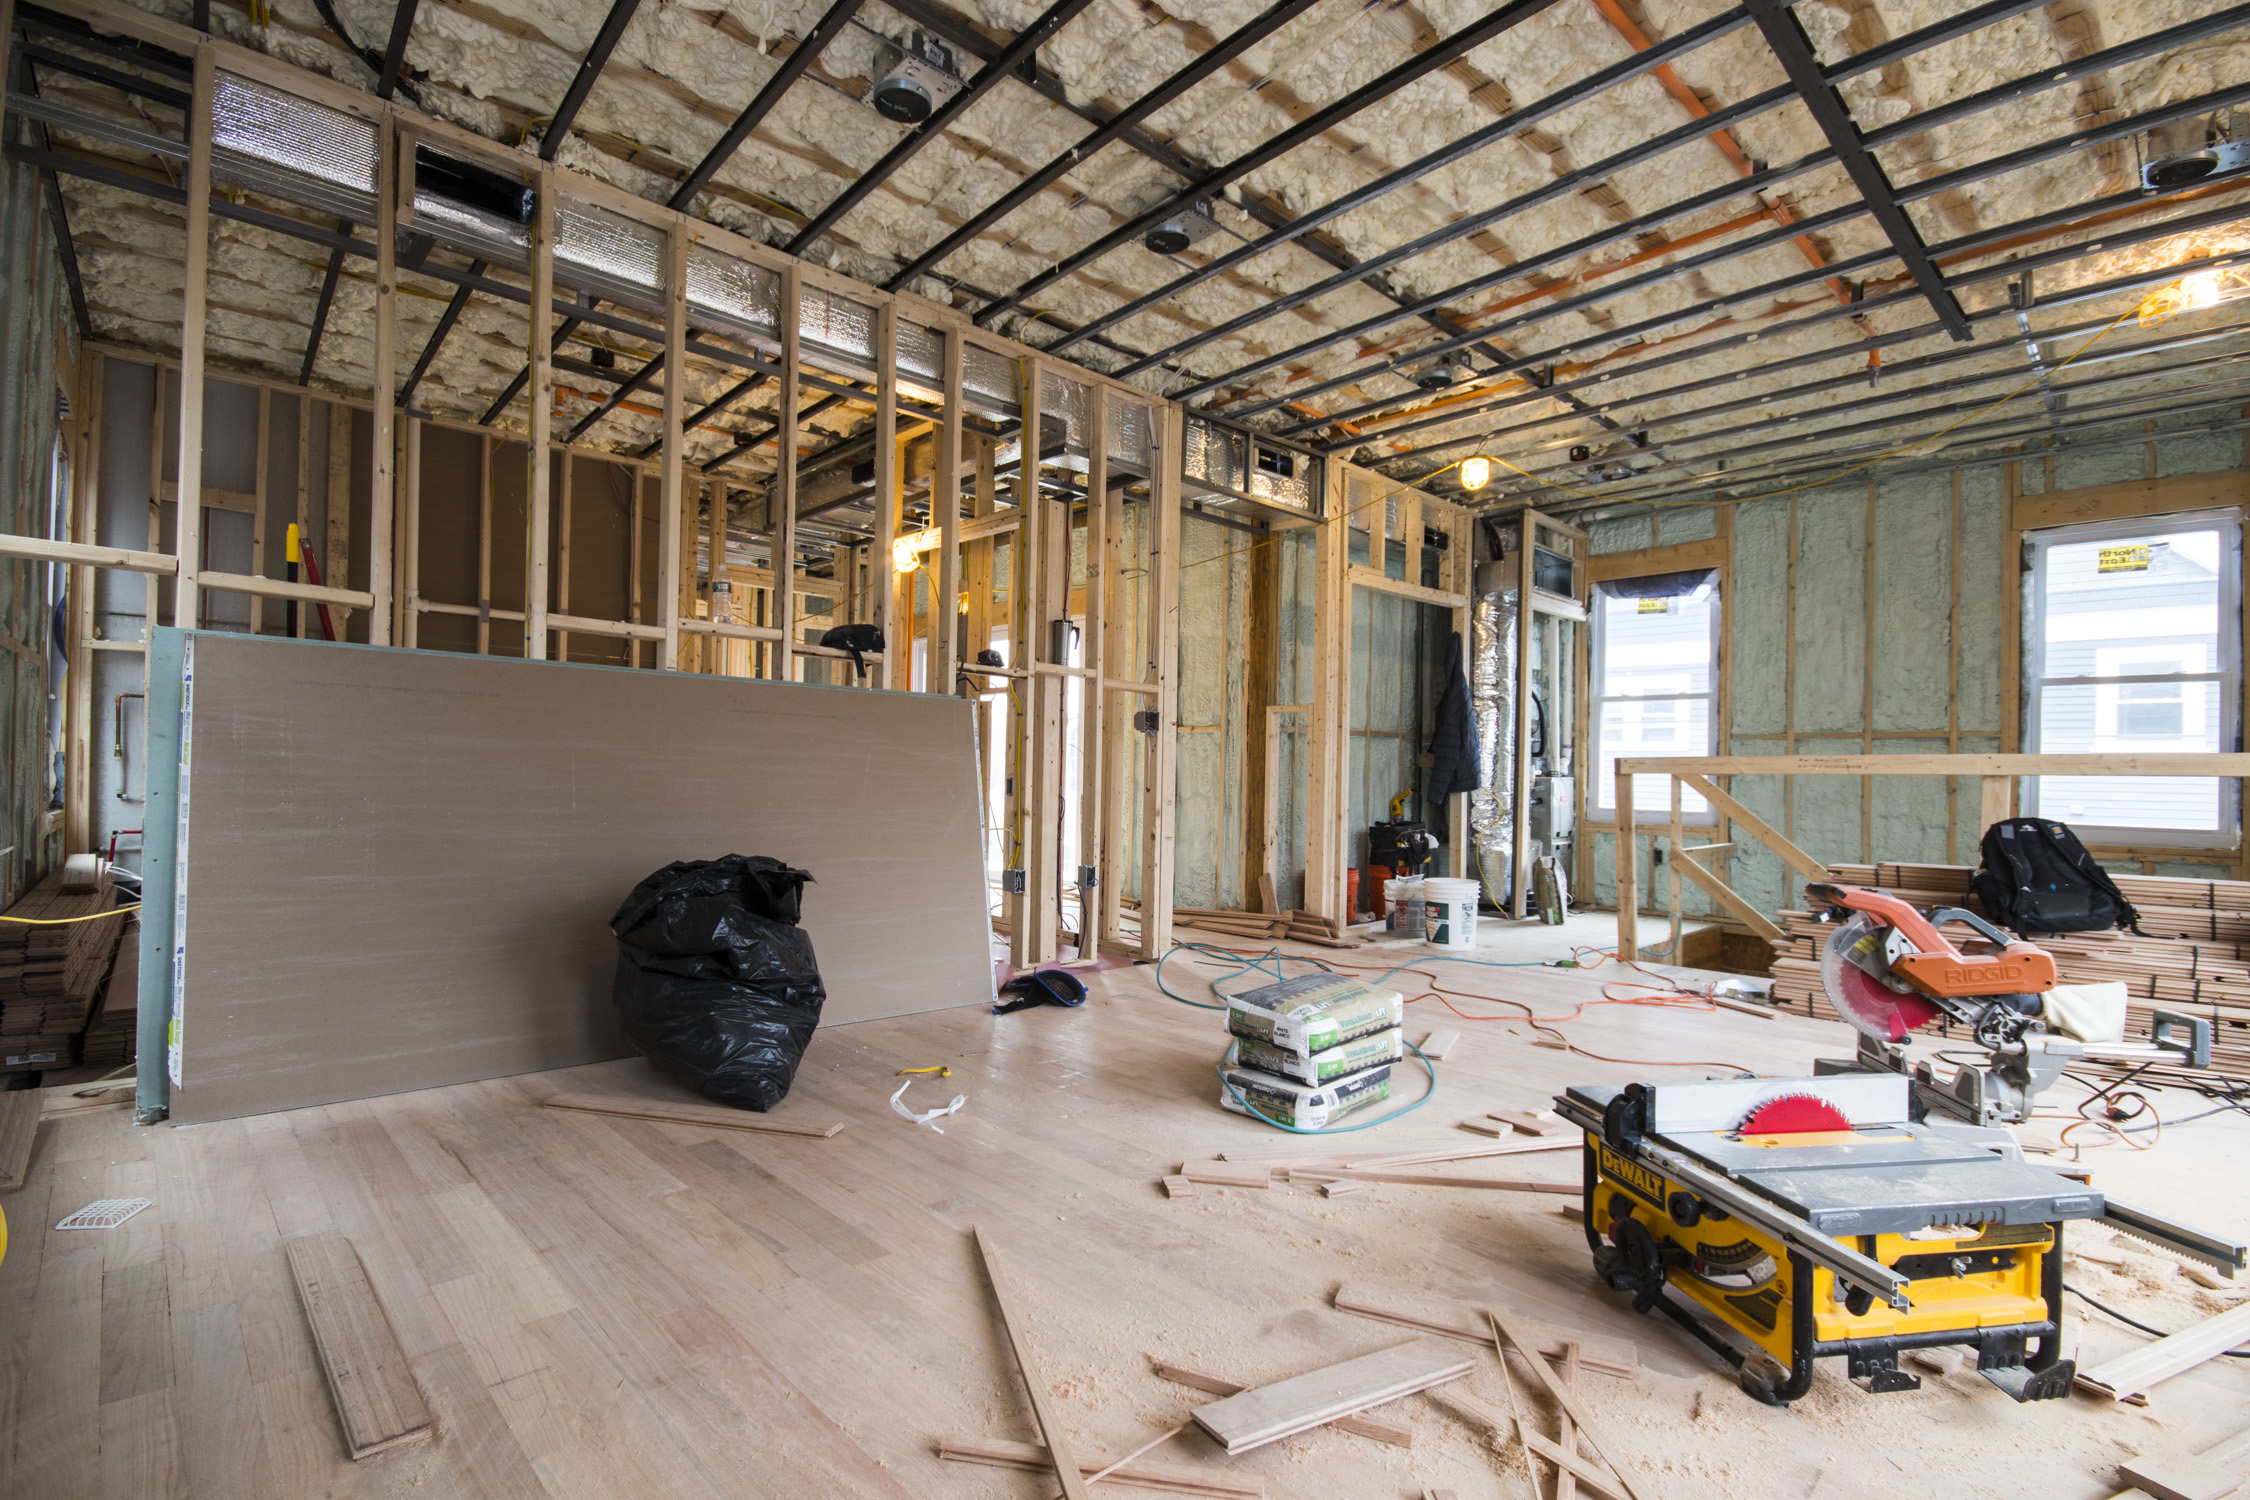 83 parker street home renovation boston general contractor_29